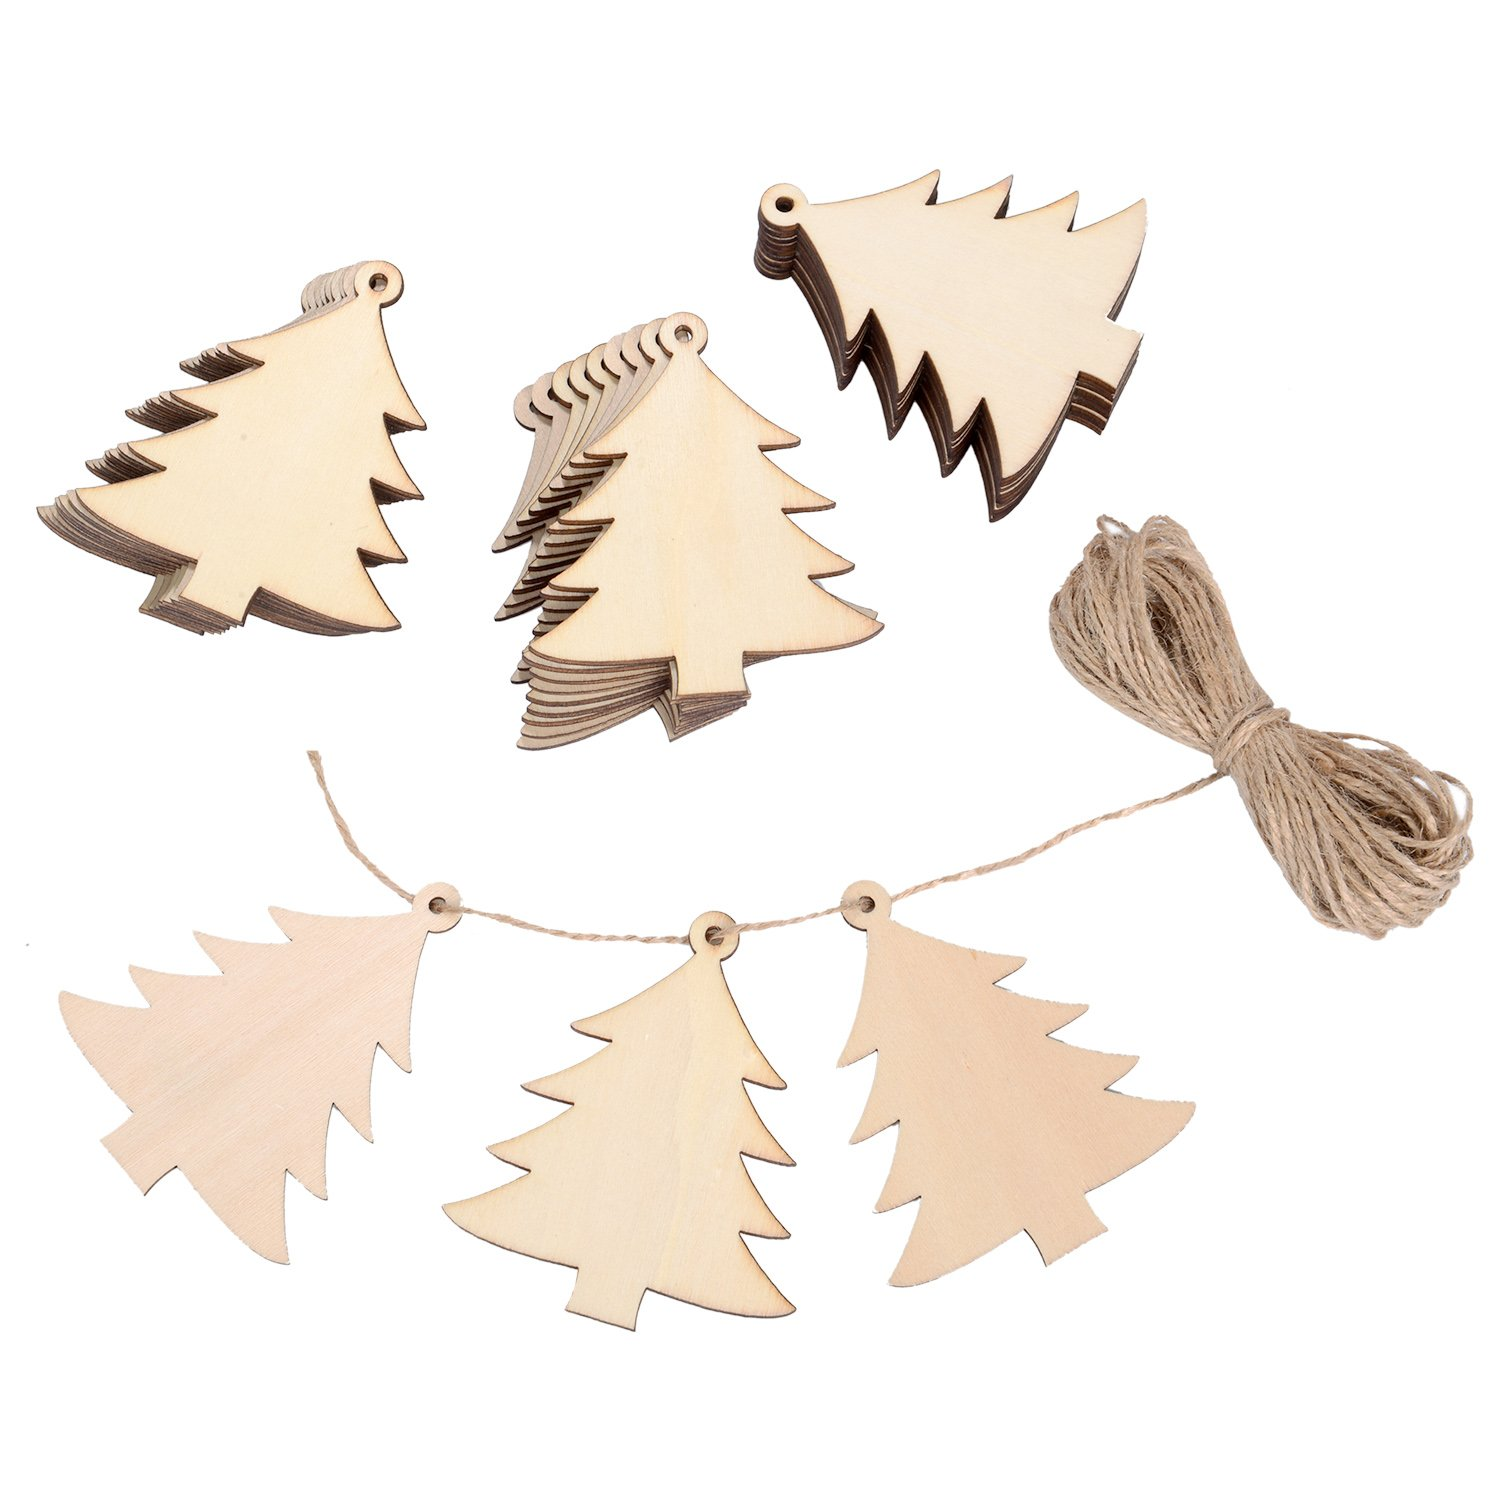 487acca5edd 30 Pieces Wood Christmas Tree Blanks Wooden Tree Embellishments with 10  Meters Natural Twine for Holiday Party Decoration  Amazon.co.uk  Kitchen    Home